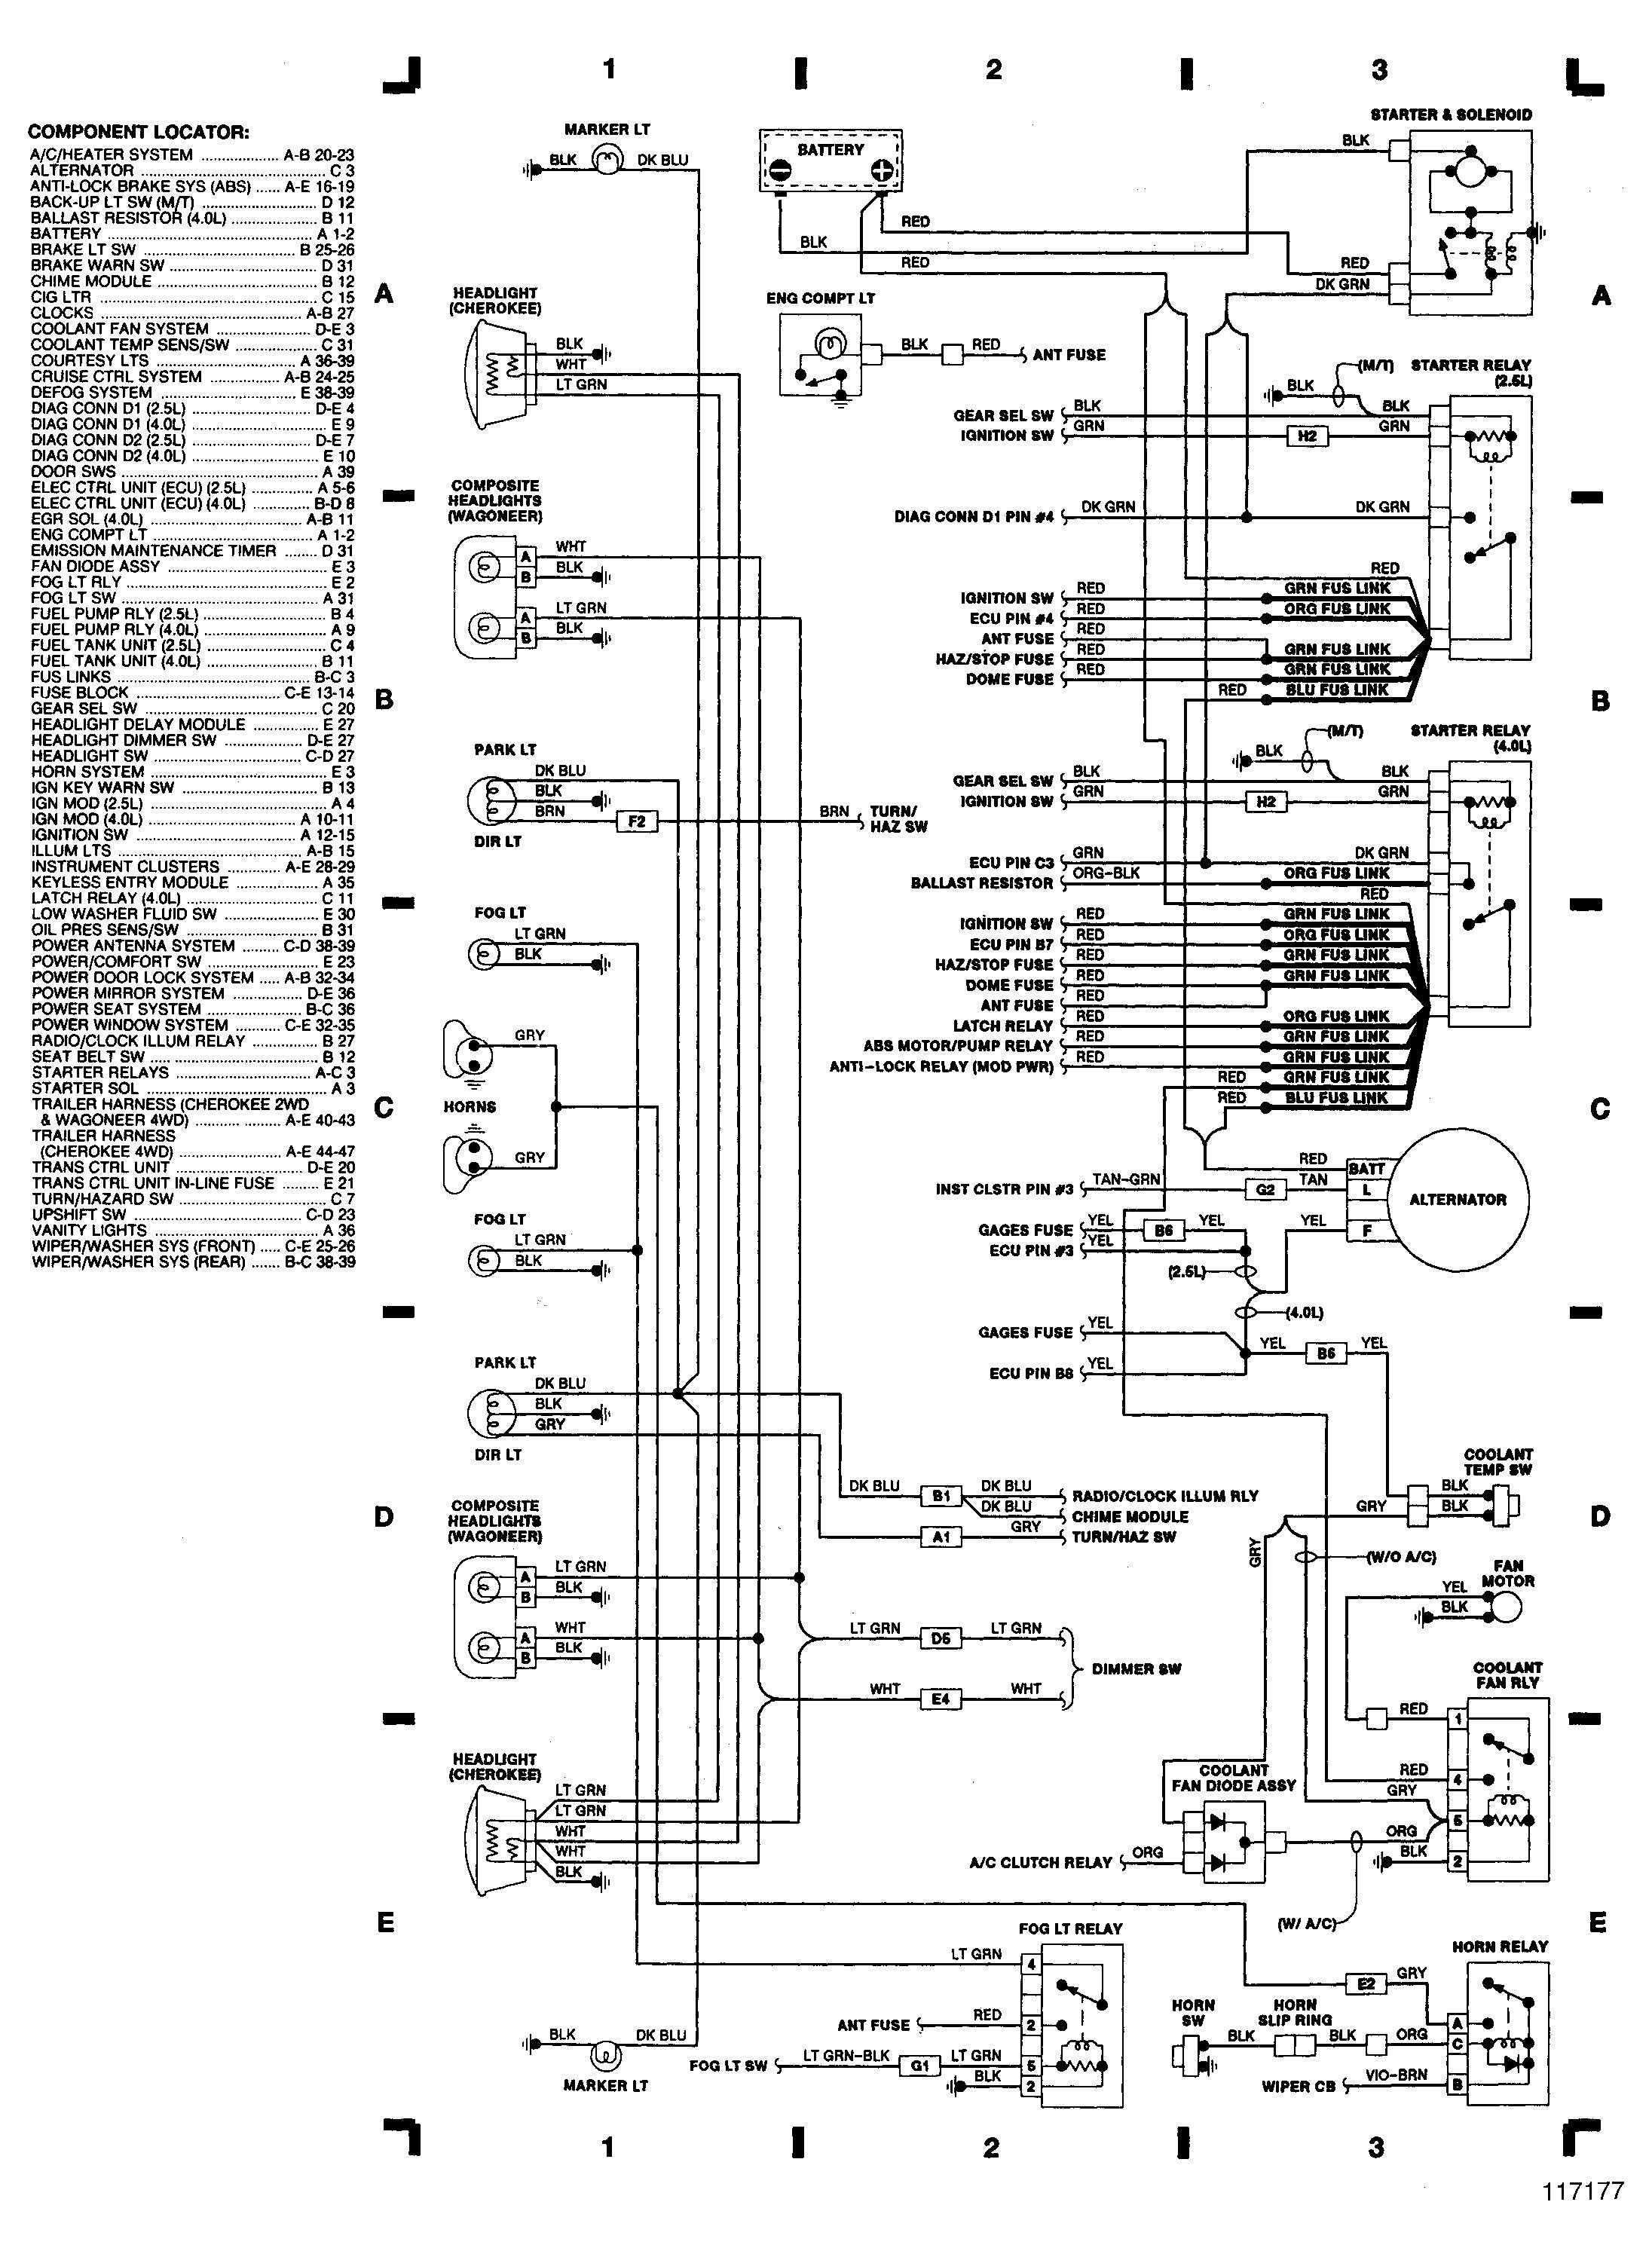 jeep xj wiring harness diagram   wiring diagrams fate education  wiring diagram library